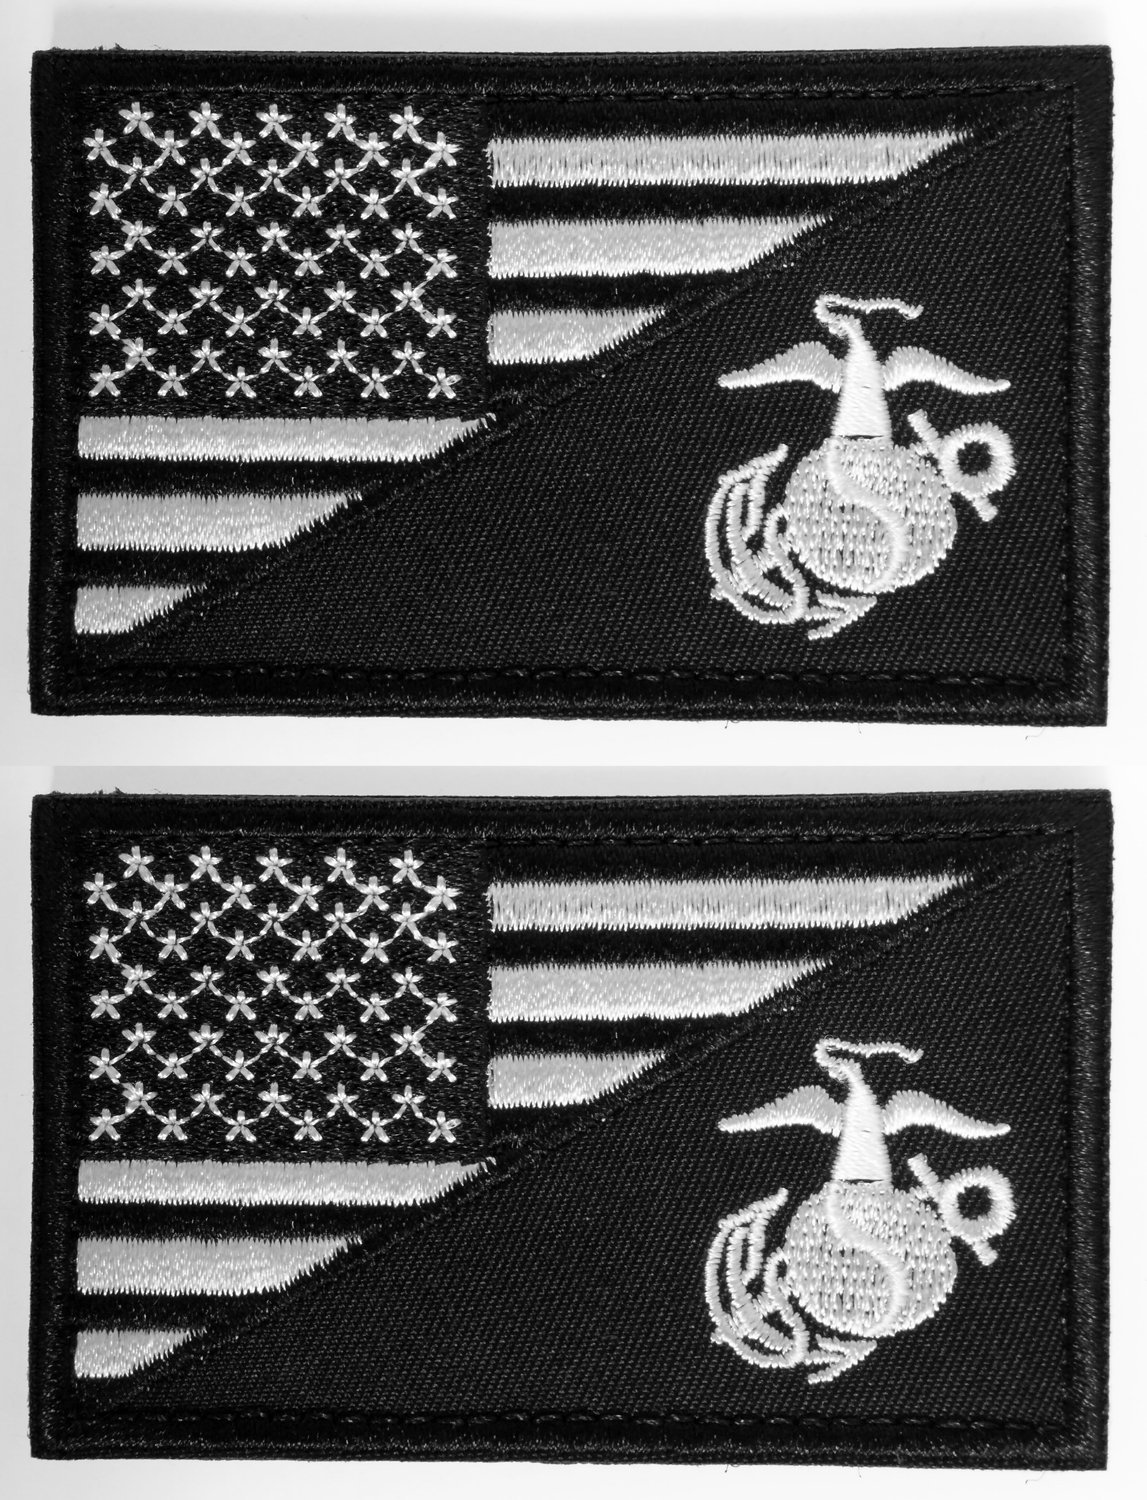 WZT Bundle 2 pieces American USA Flag Marine Corps Usmc Black Ops White Tactical Morale Patch